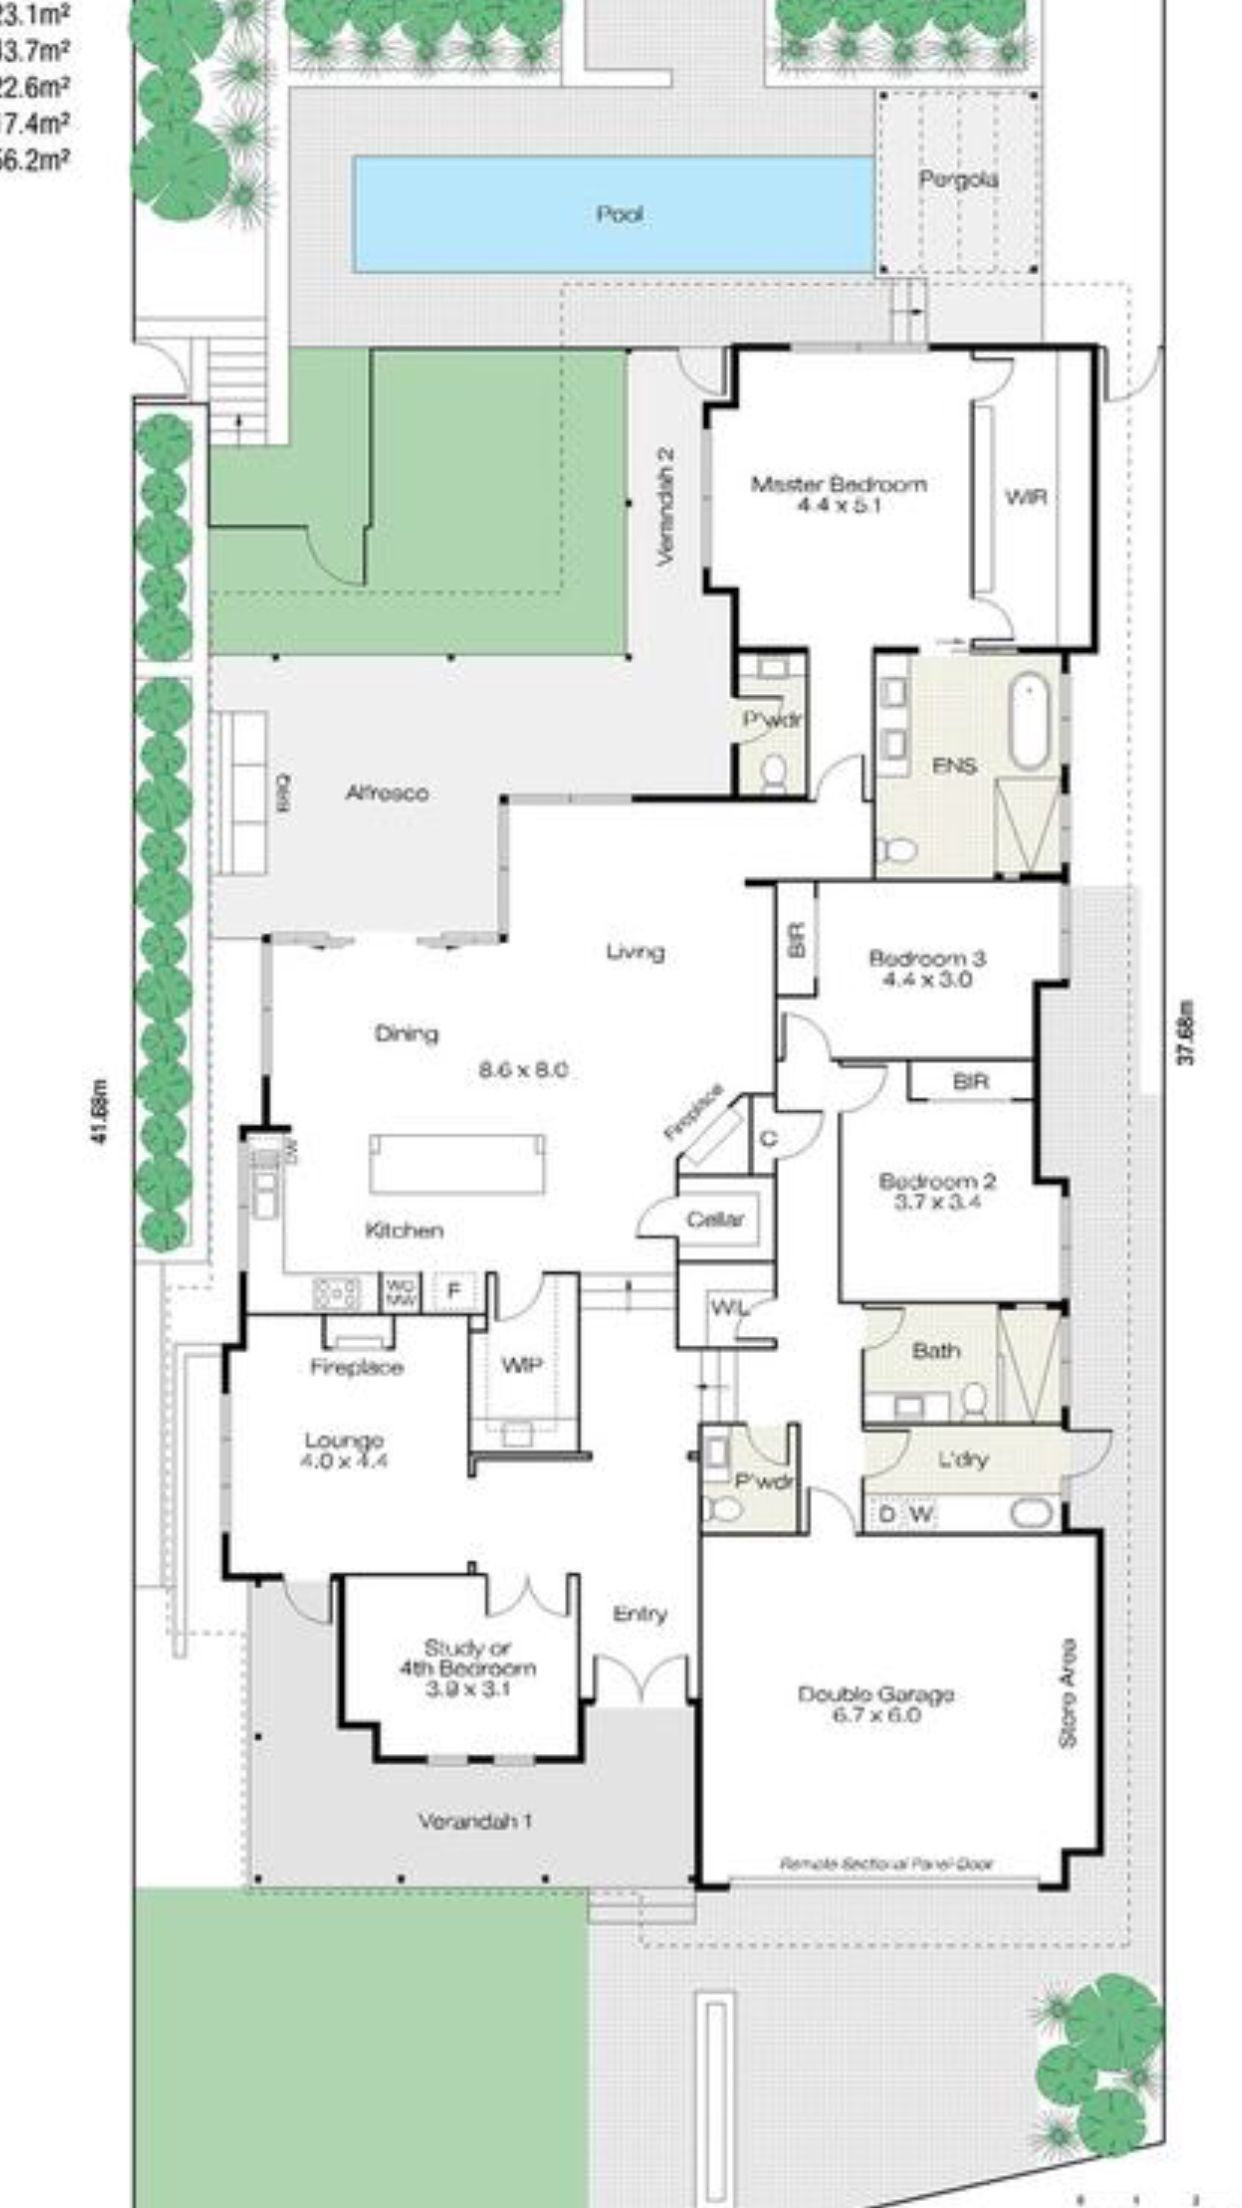 Most Common To Requirements Home Design Floor Plans Floor Plan Design House Floor Plans